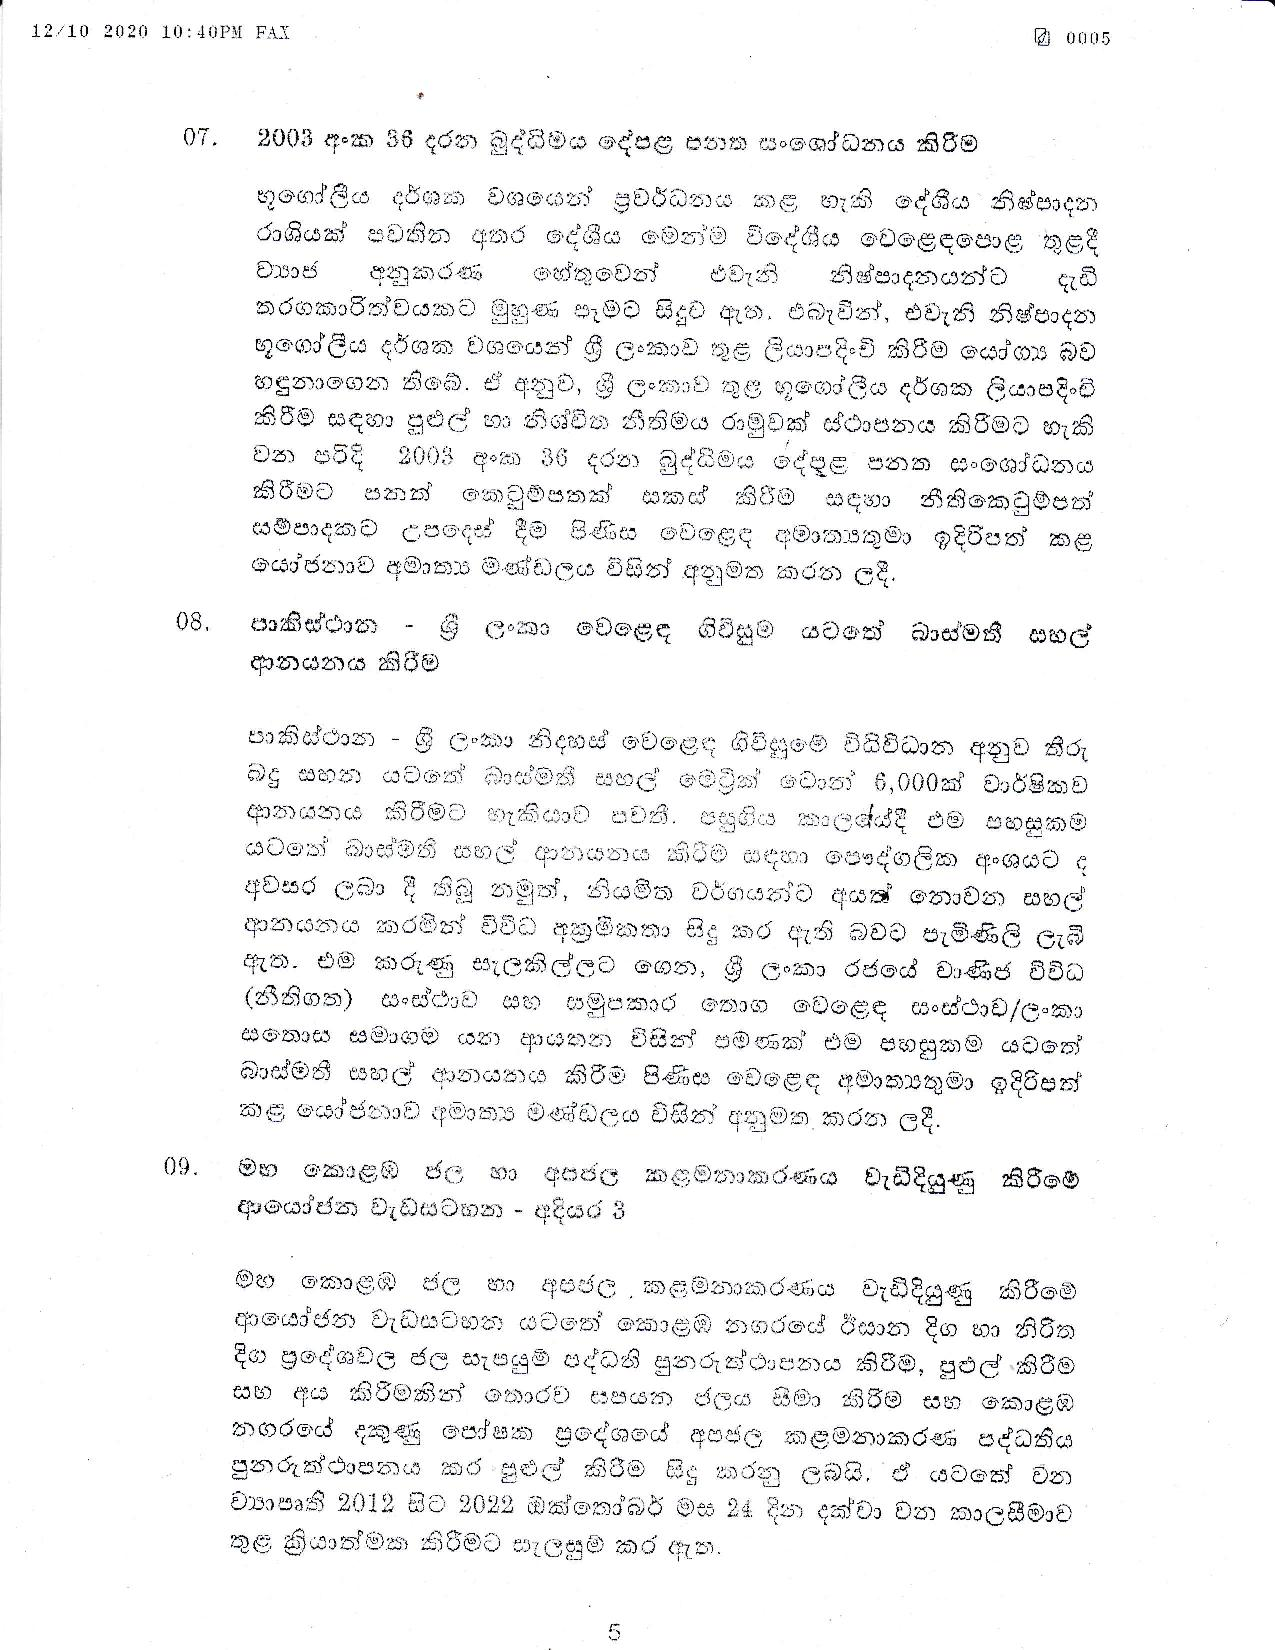 Cabinet Decision on 12.10.2020 page 005